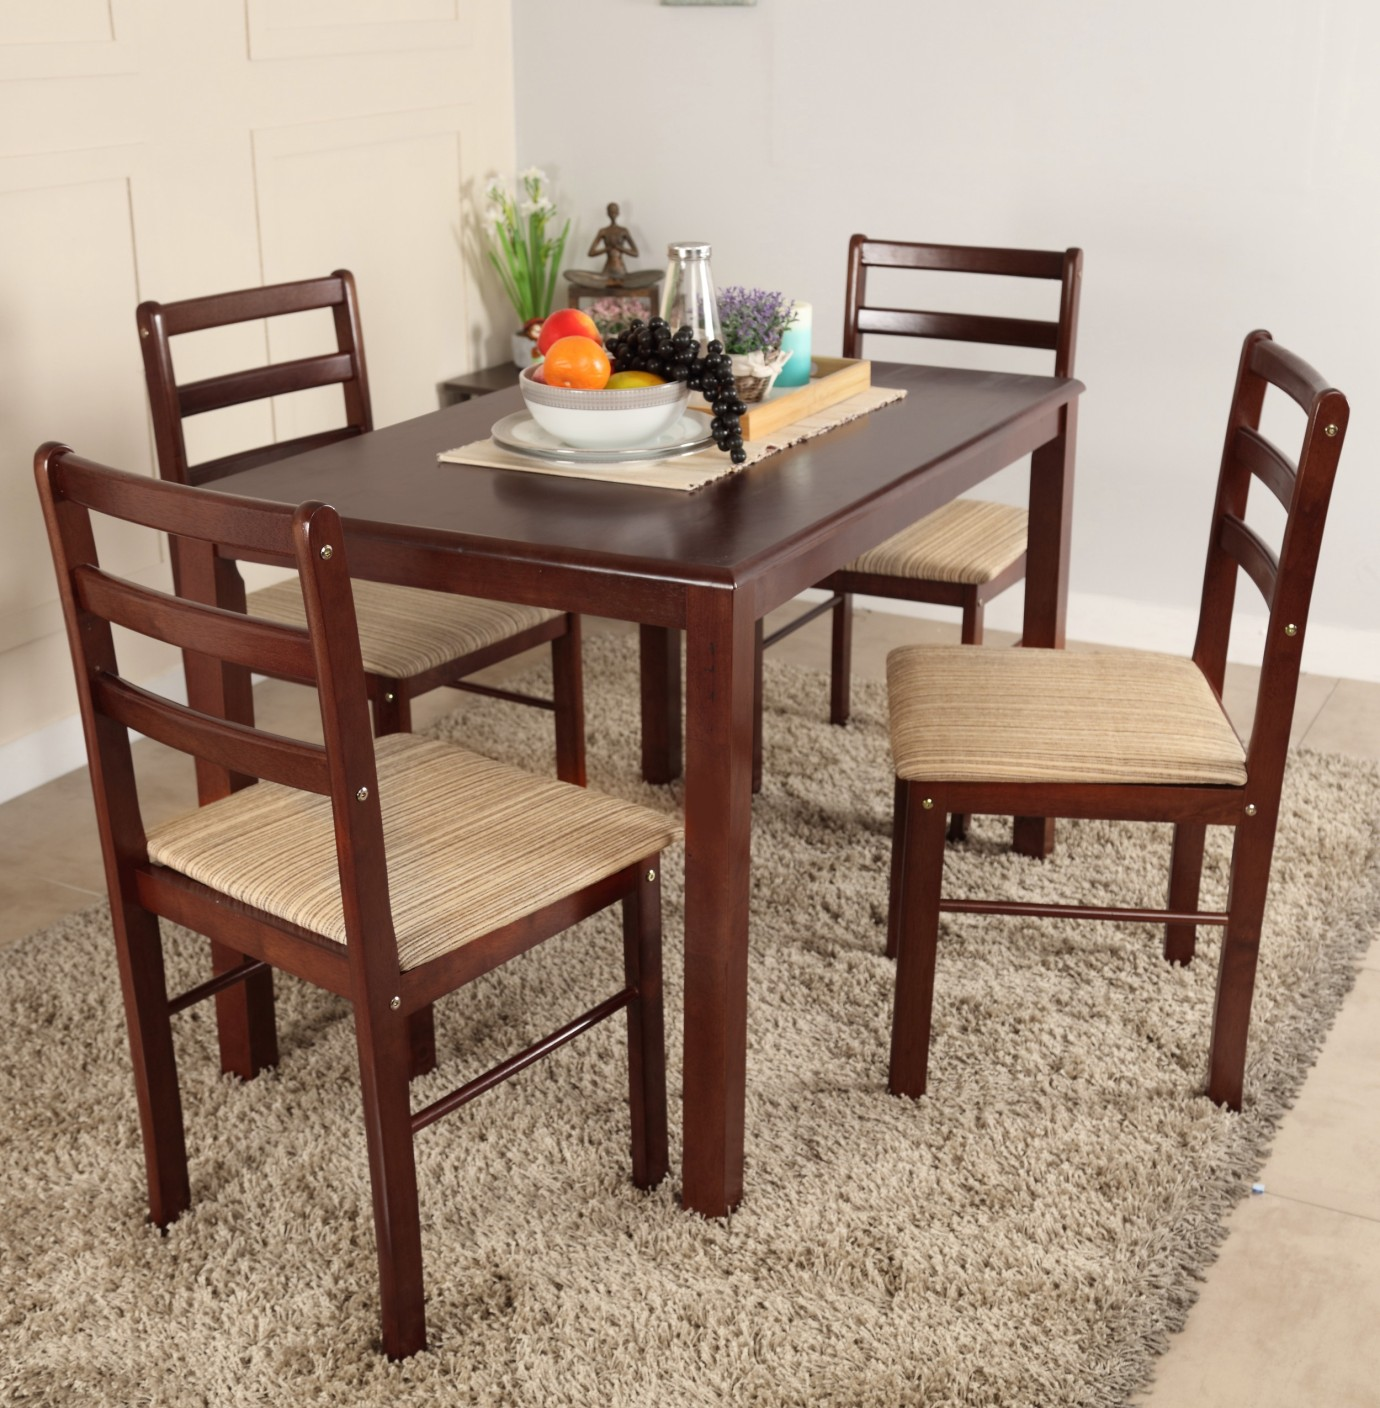 Woodness solid wood 4 seater dining set price in india for Dining set design